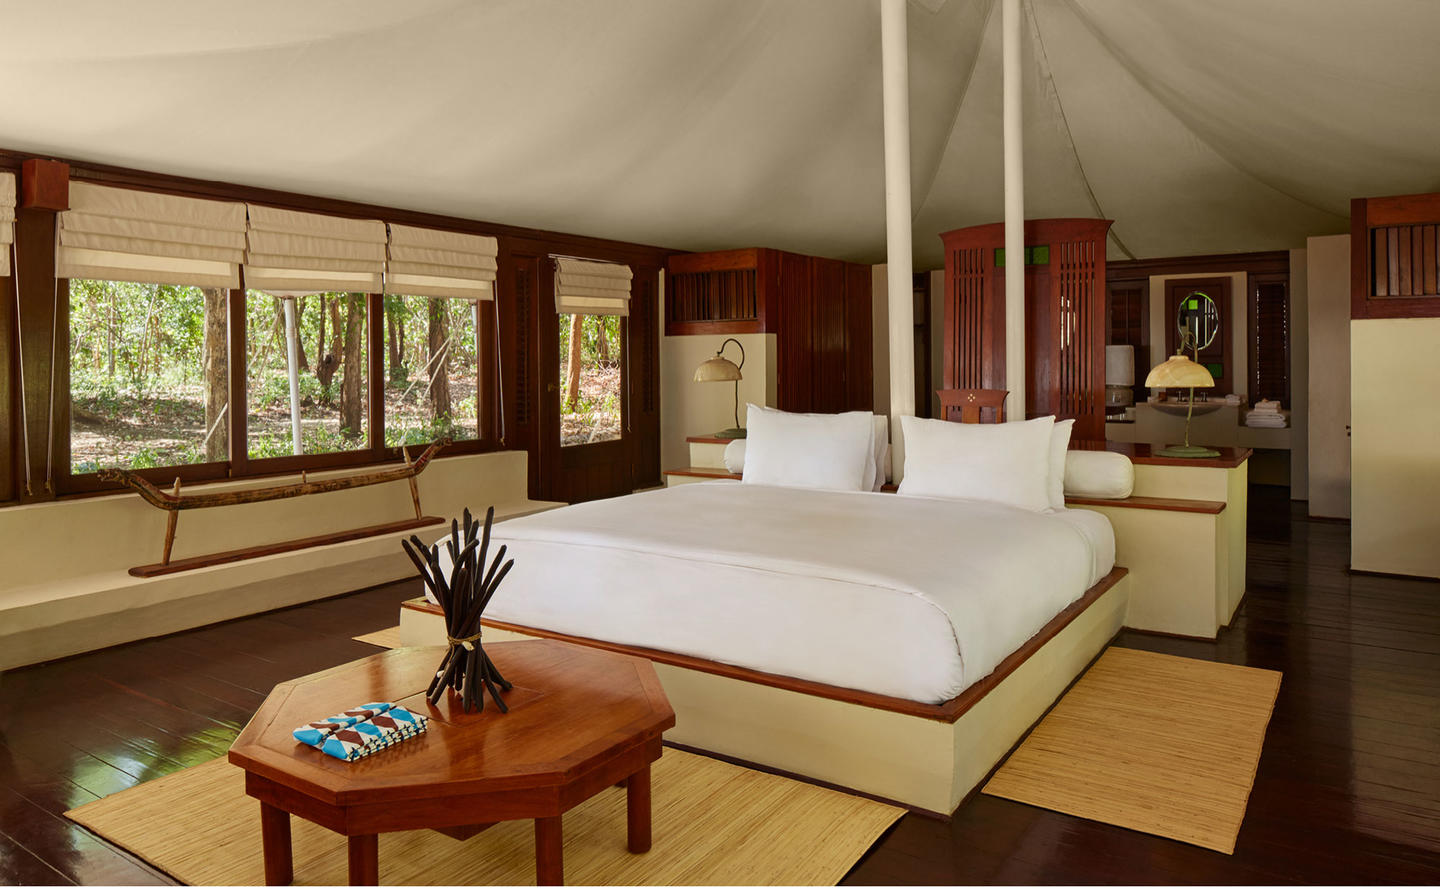 Bedroom, Jungle Tent - Amanwana, Moyo Island, Indonesia